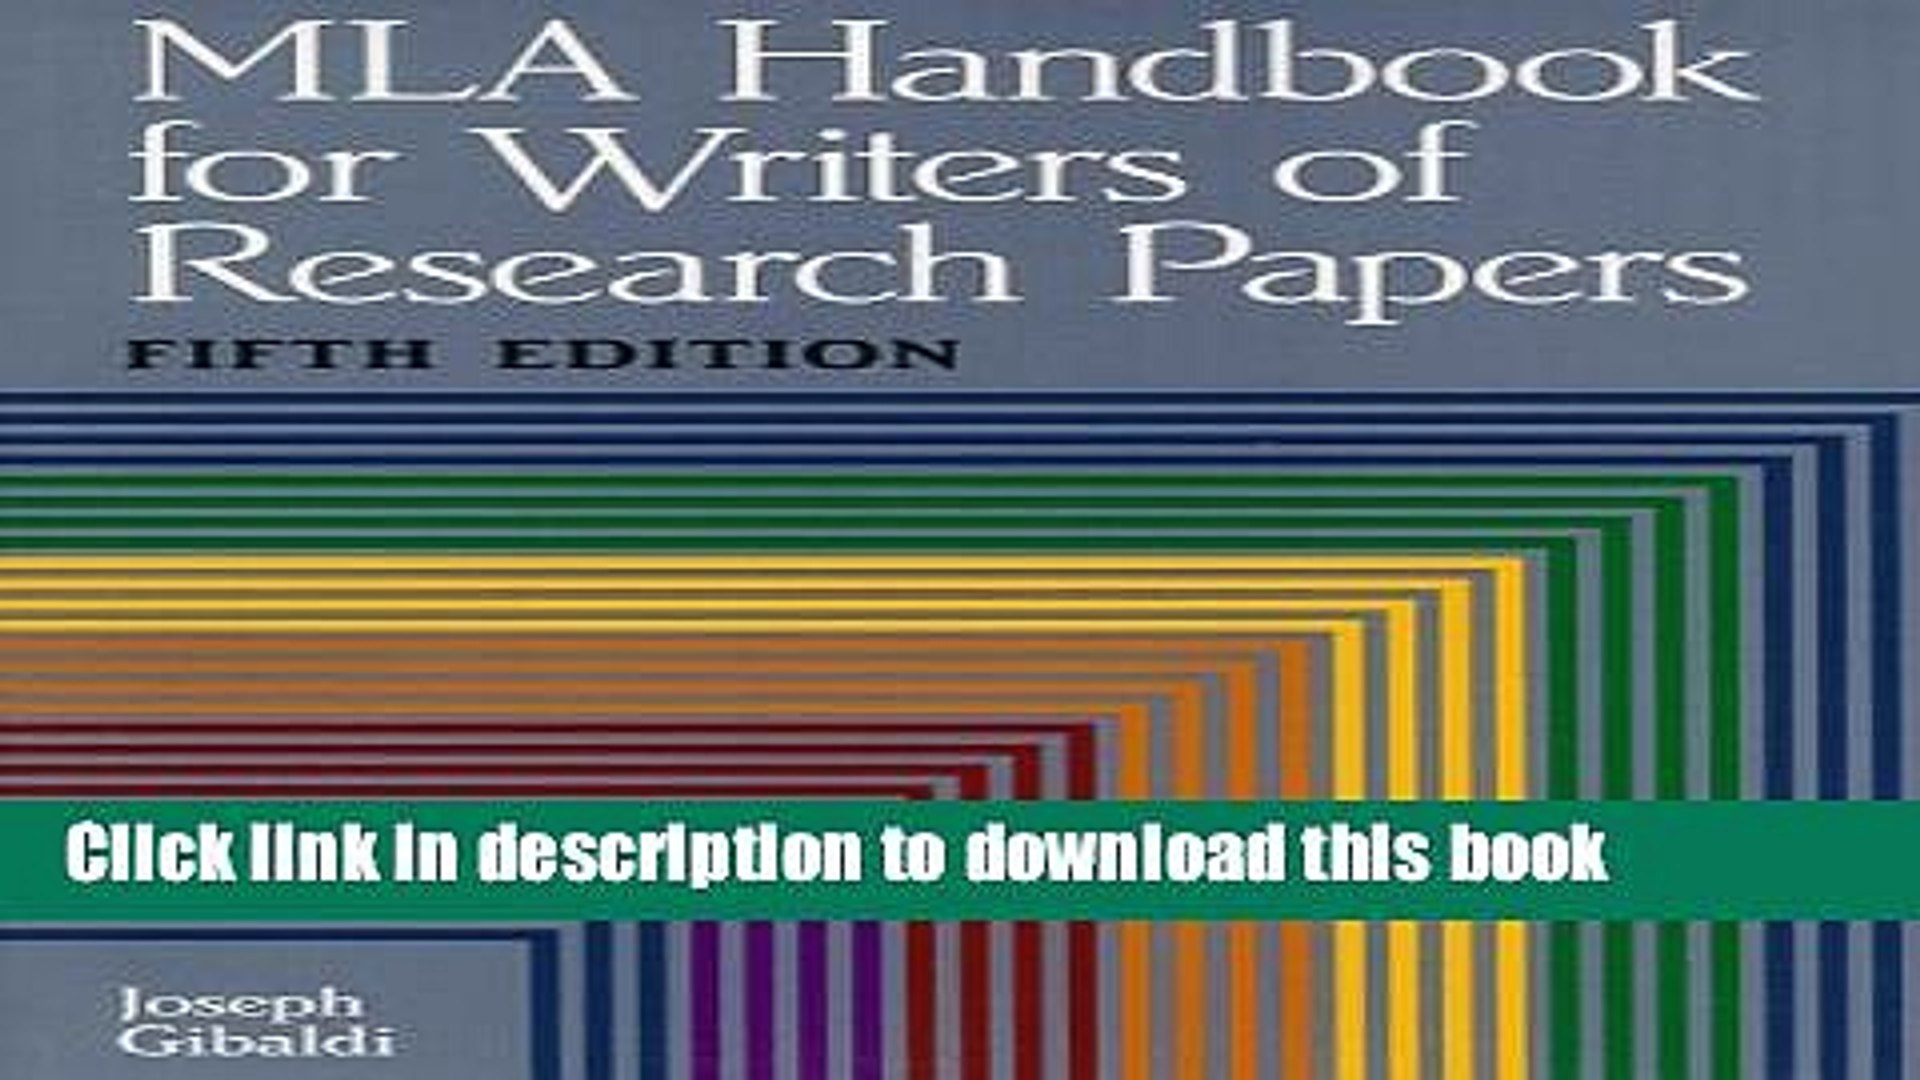 005 Mla Handbook For Writing Research Papers Paper X1080 Frightening Writers Of 8th Edition Pdf Free Download According To The Full